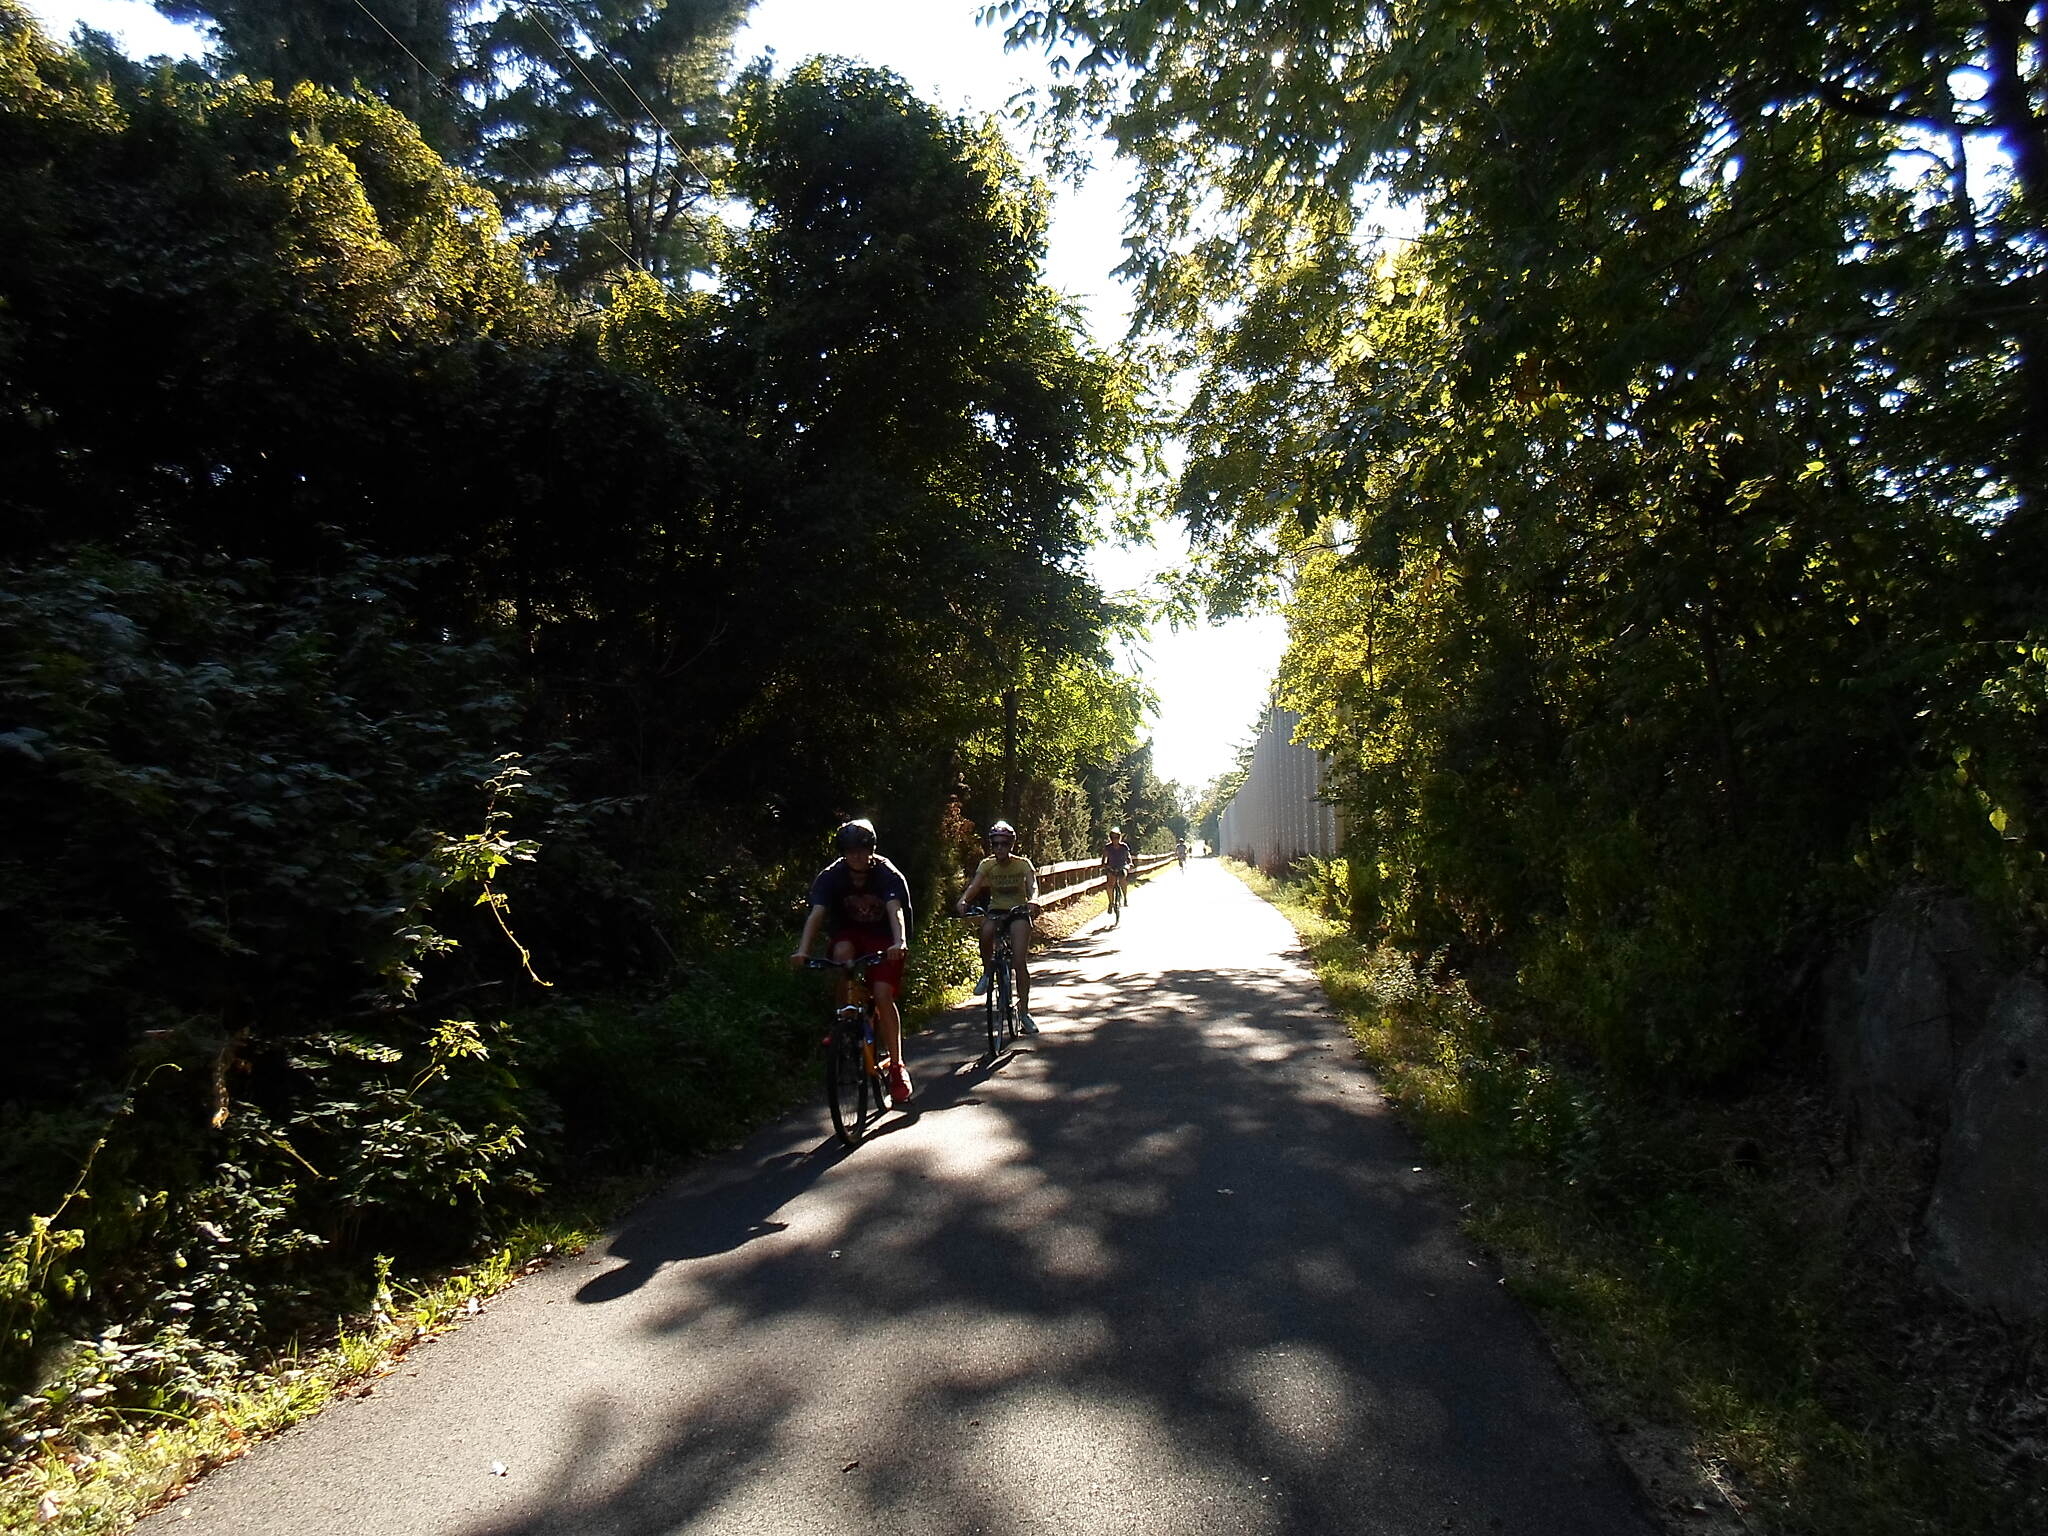 Chester Valley Trail Chester Valley Trail Cyclists entering the wooded area near the Contention Lane bridge.